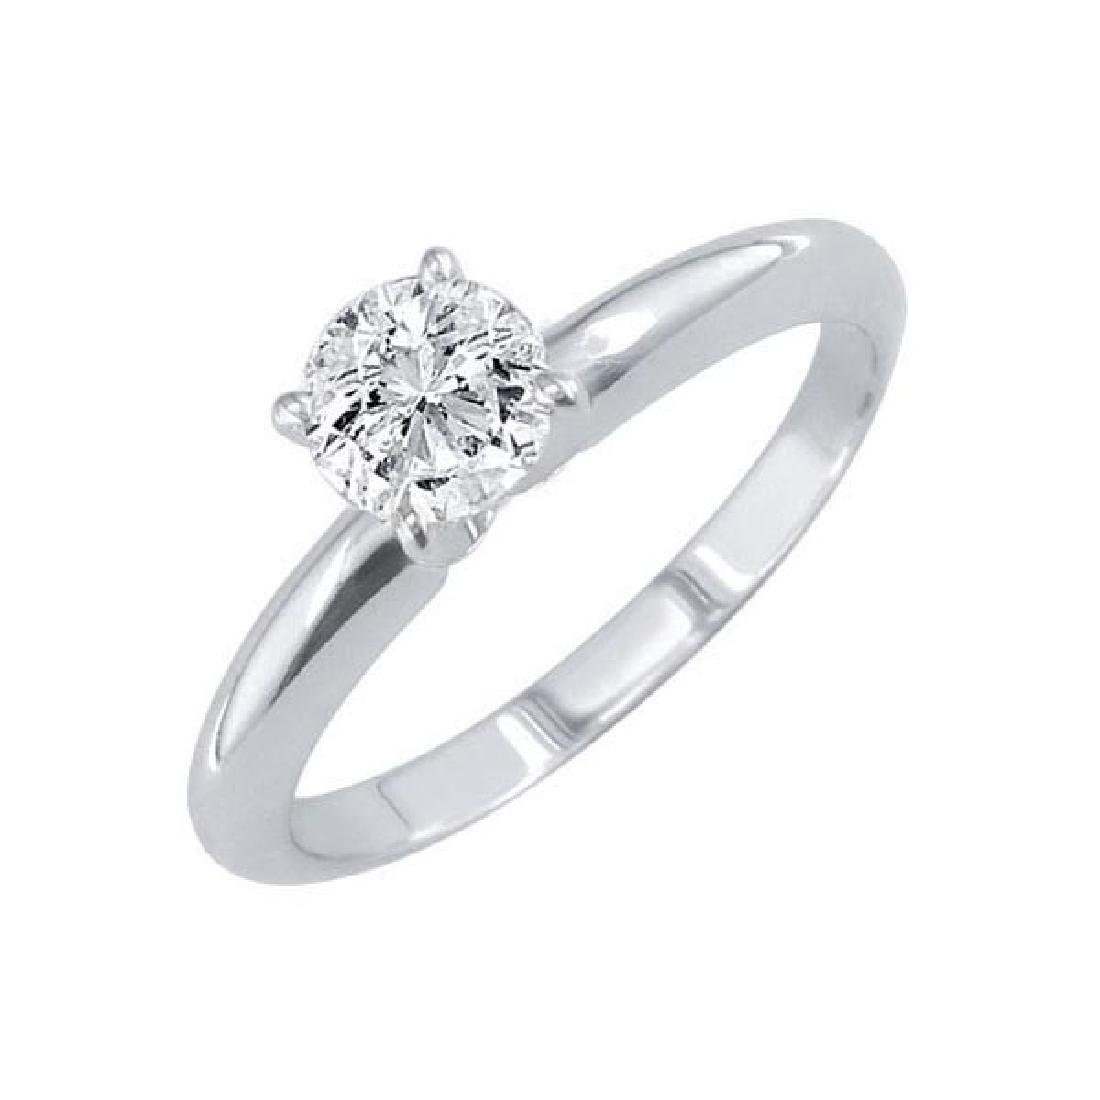 Certified 1.17 CTW Round Diamond Solitaire 14k Ring G/I